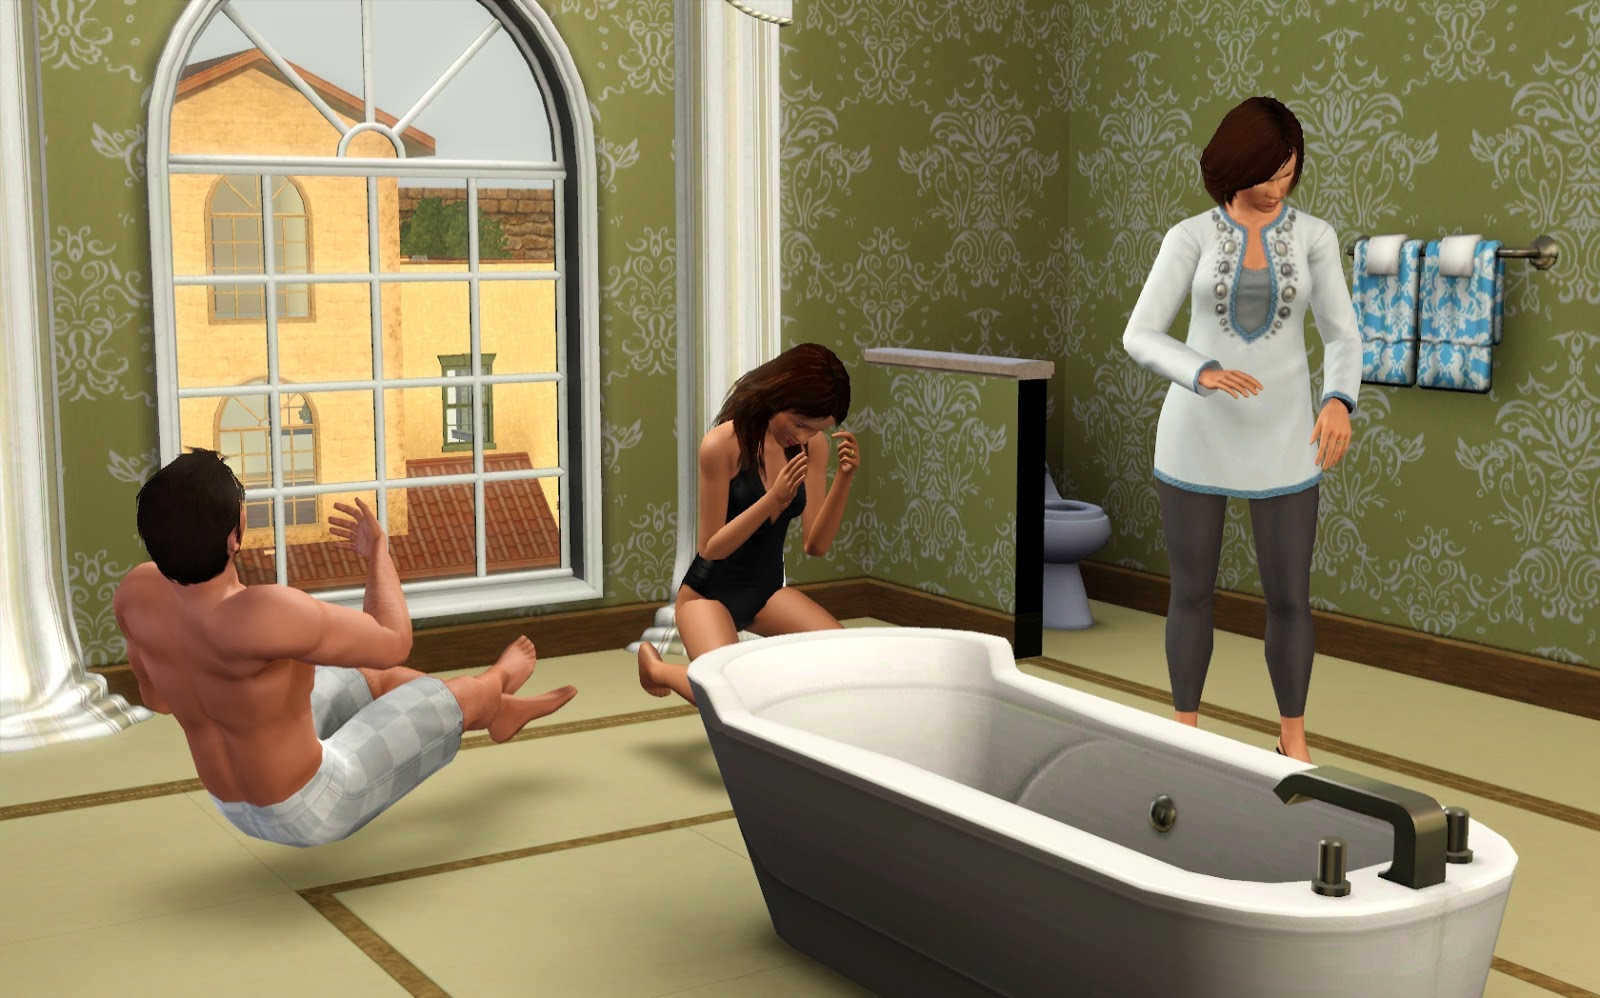 My sims 3 poses how to take pictures in bath with water for 3 4 bath